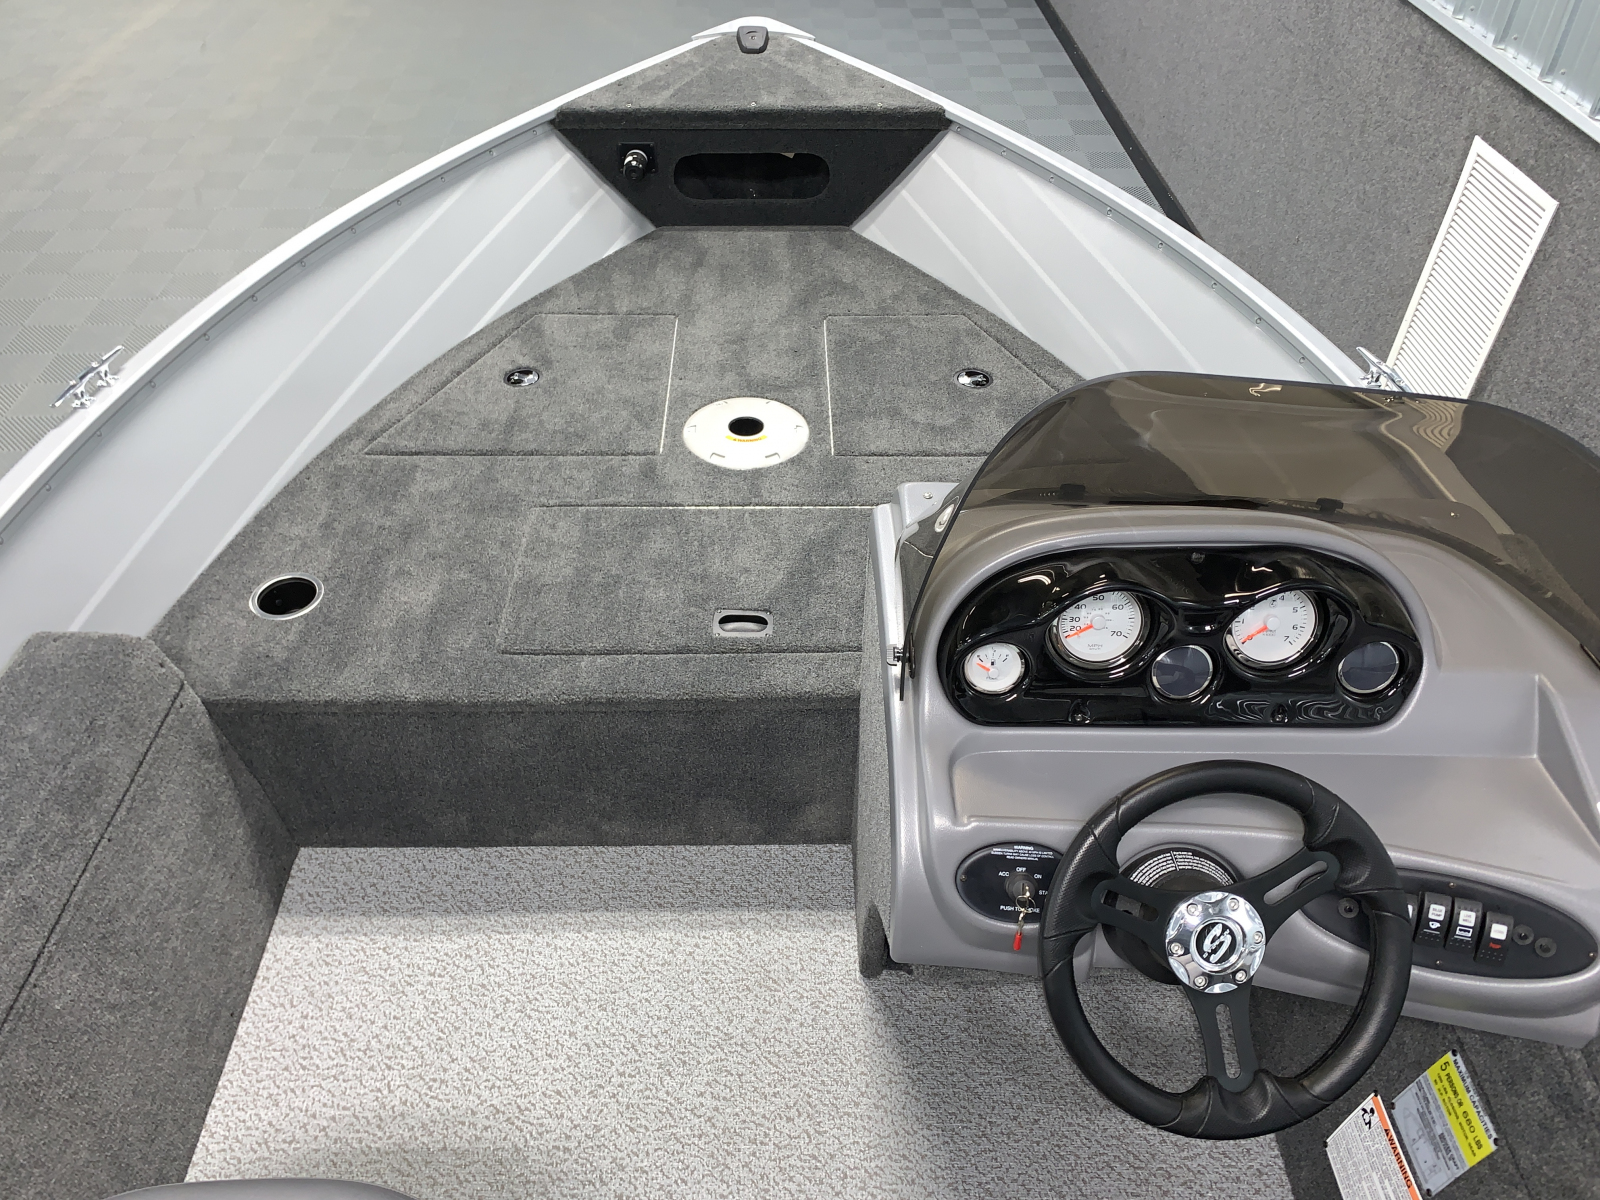 Bow Casting Deck of the 2022 Smoker Craft 161 Pro Angler Fishing Boat